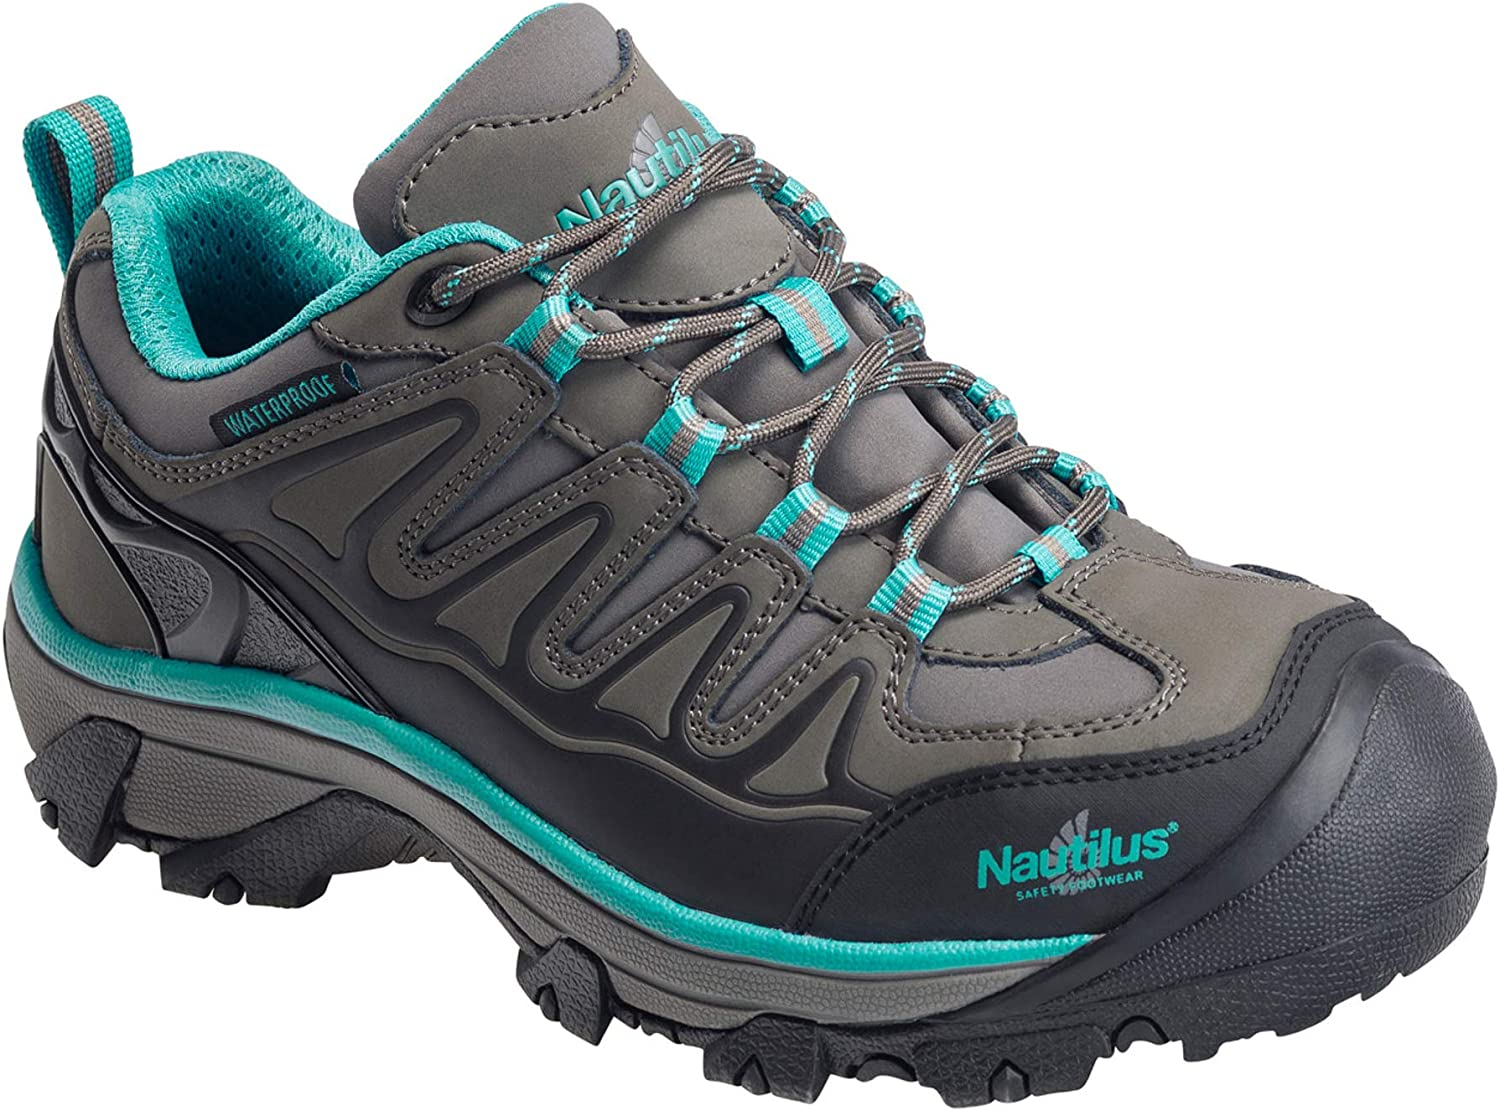 Nautilus Safety Footwear womens Eh Athletic